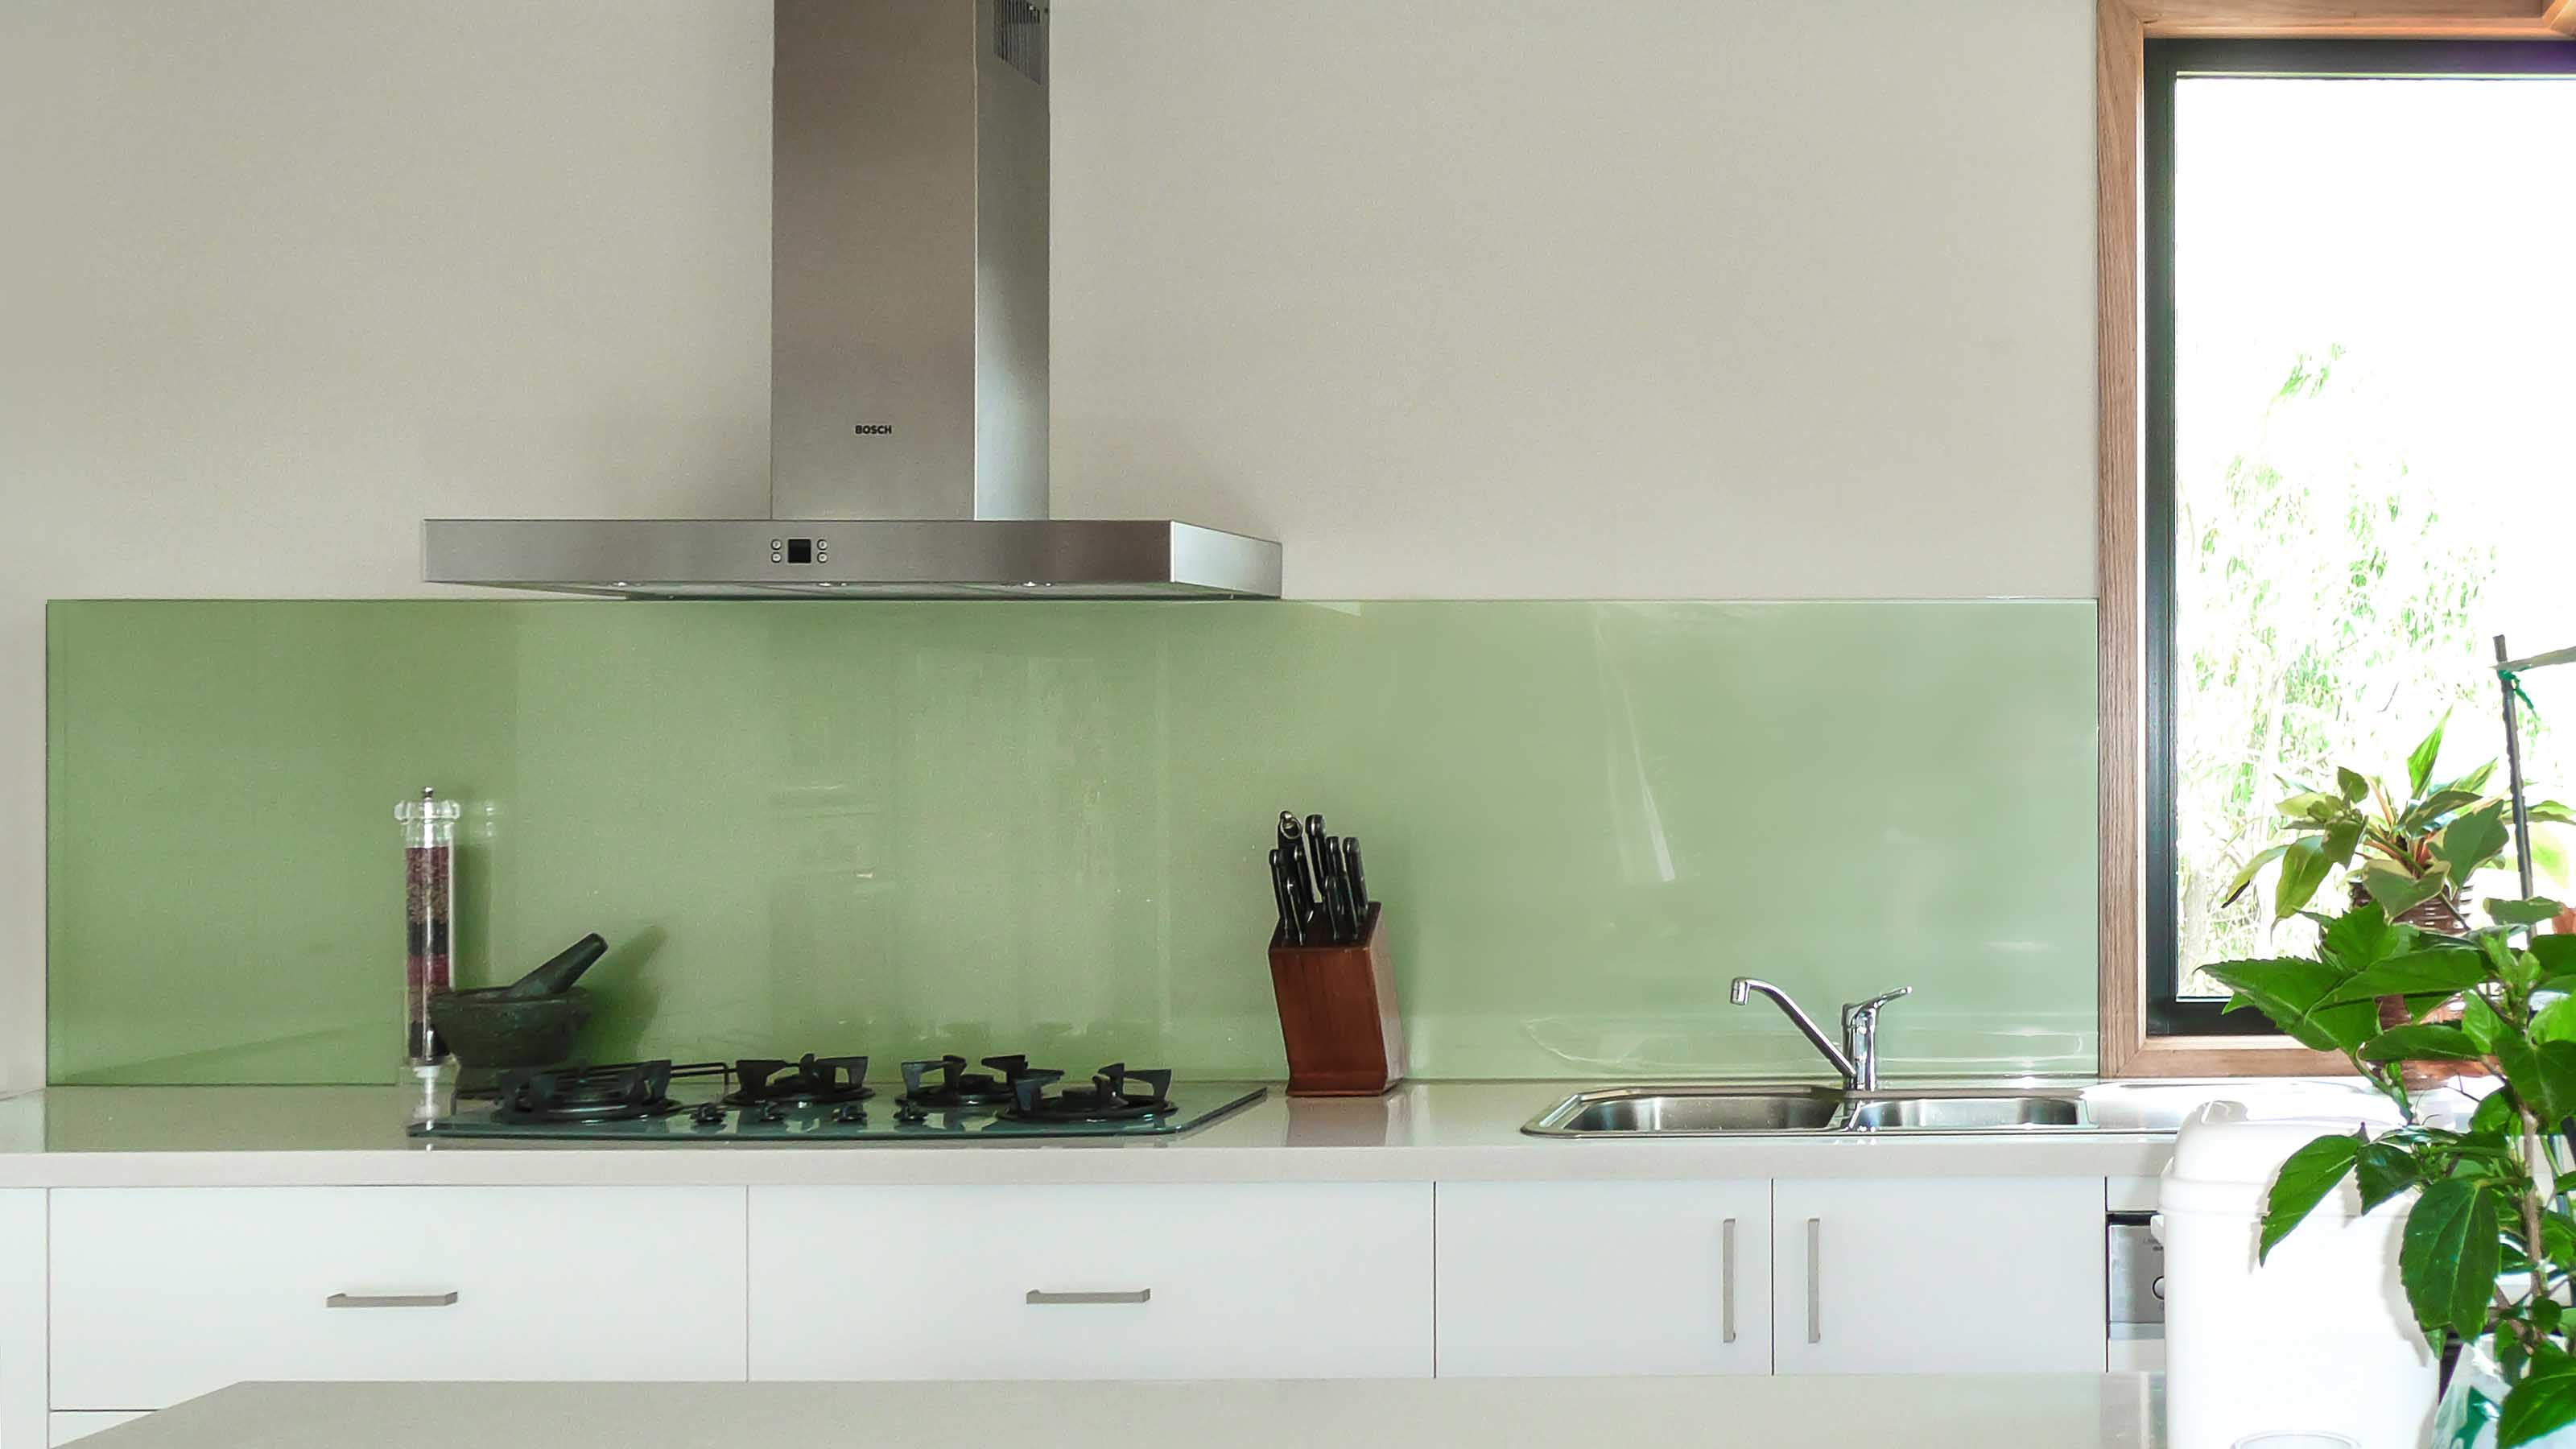 KOLOR™; -  Green Metallic - Kitchen Glass Splashbacks - Stone Benchtop - Lorne - Supplied & Installed by - geelongsplashbacks.com.au